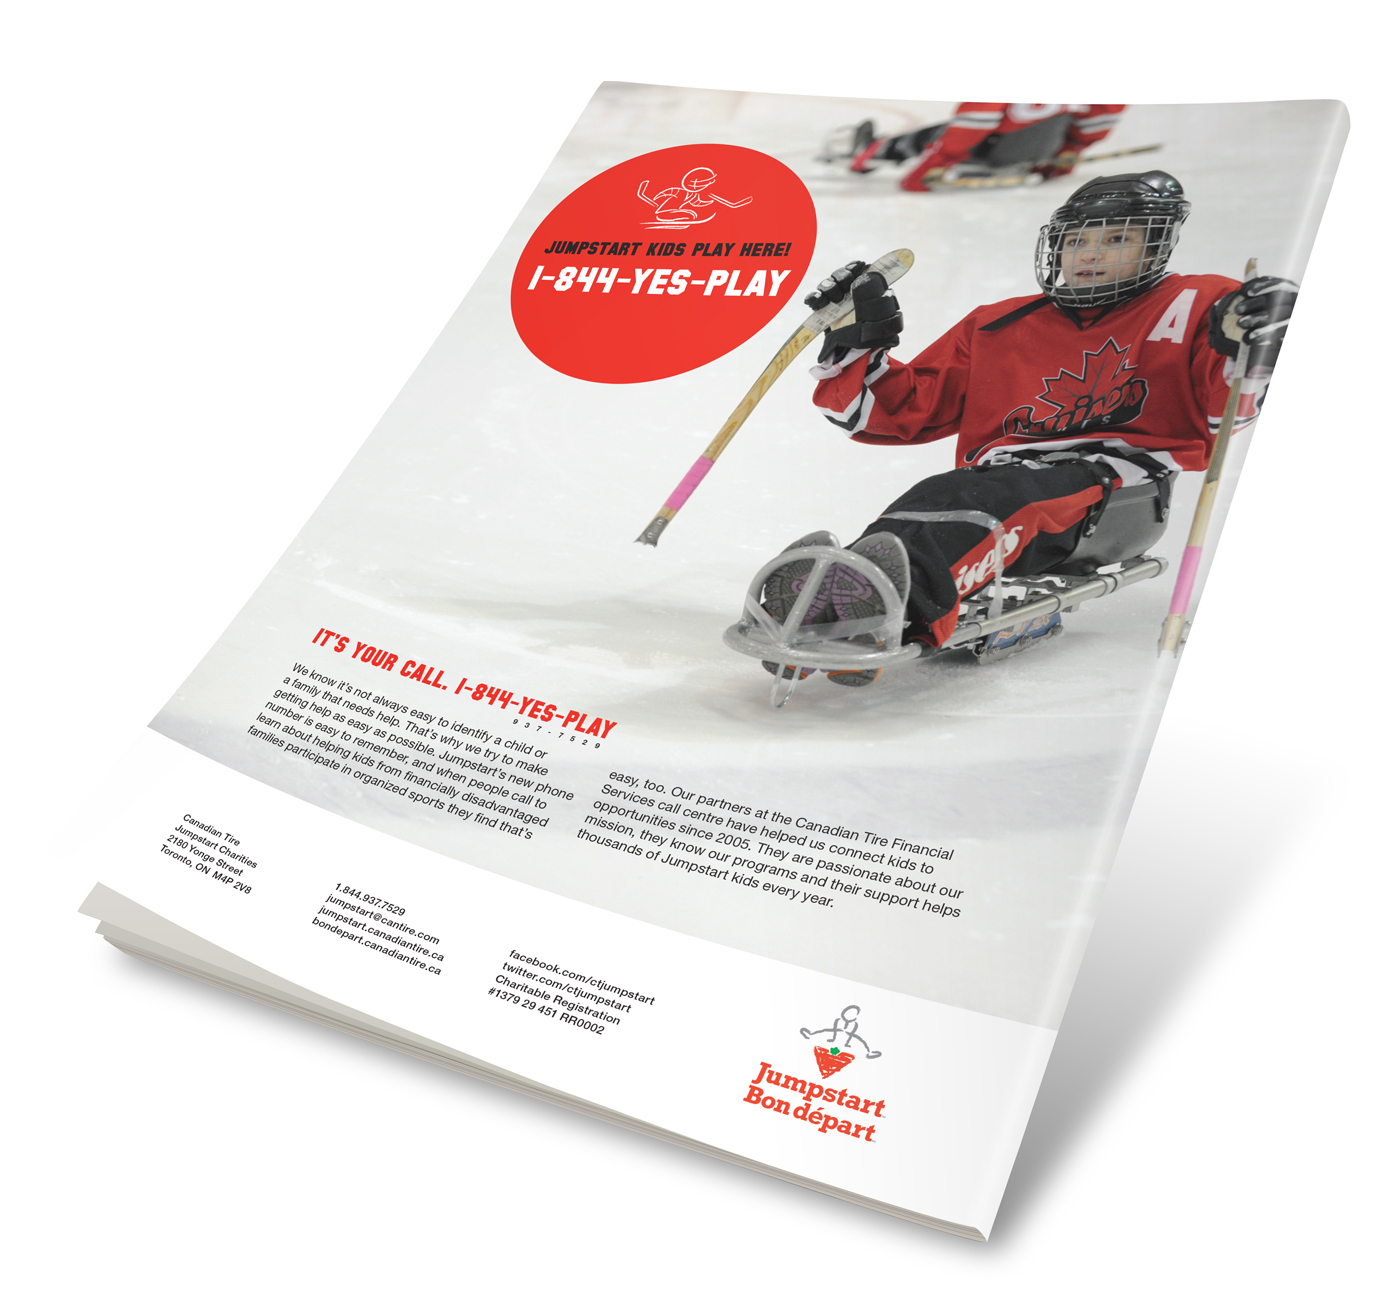 Canadian Tire Jumpstart Annual Report on Behance